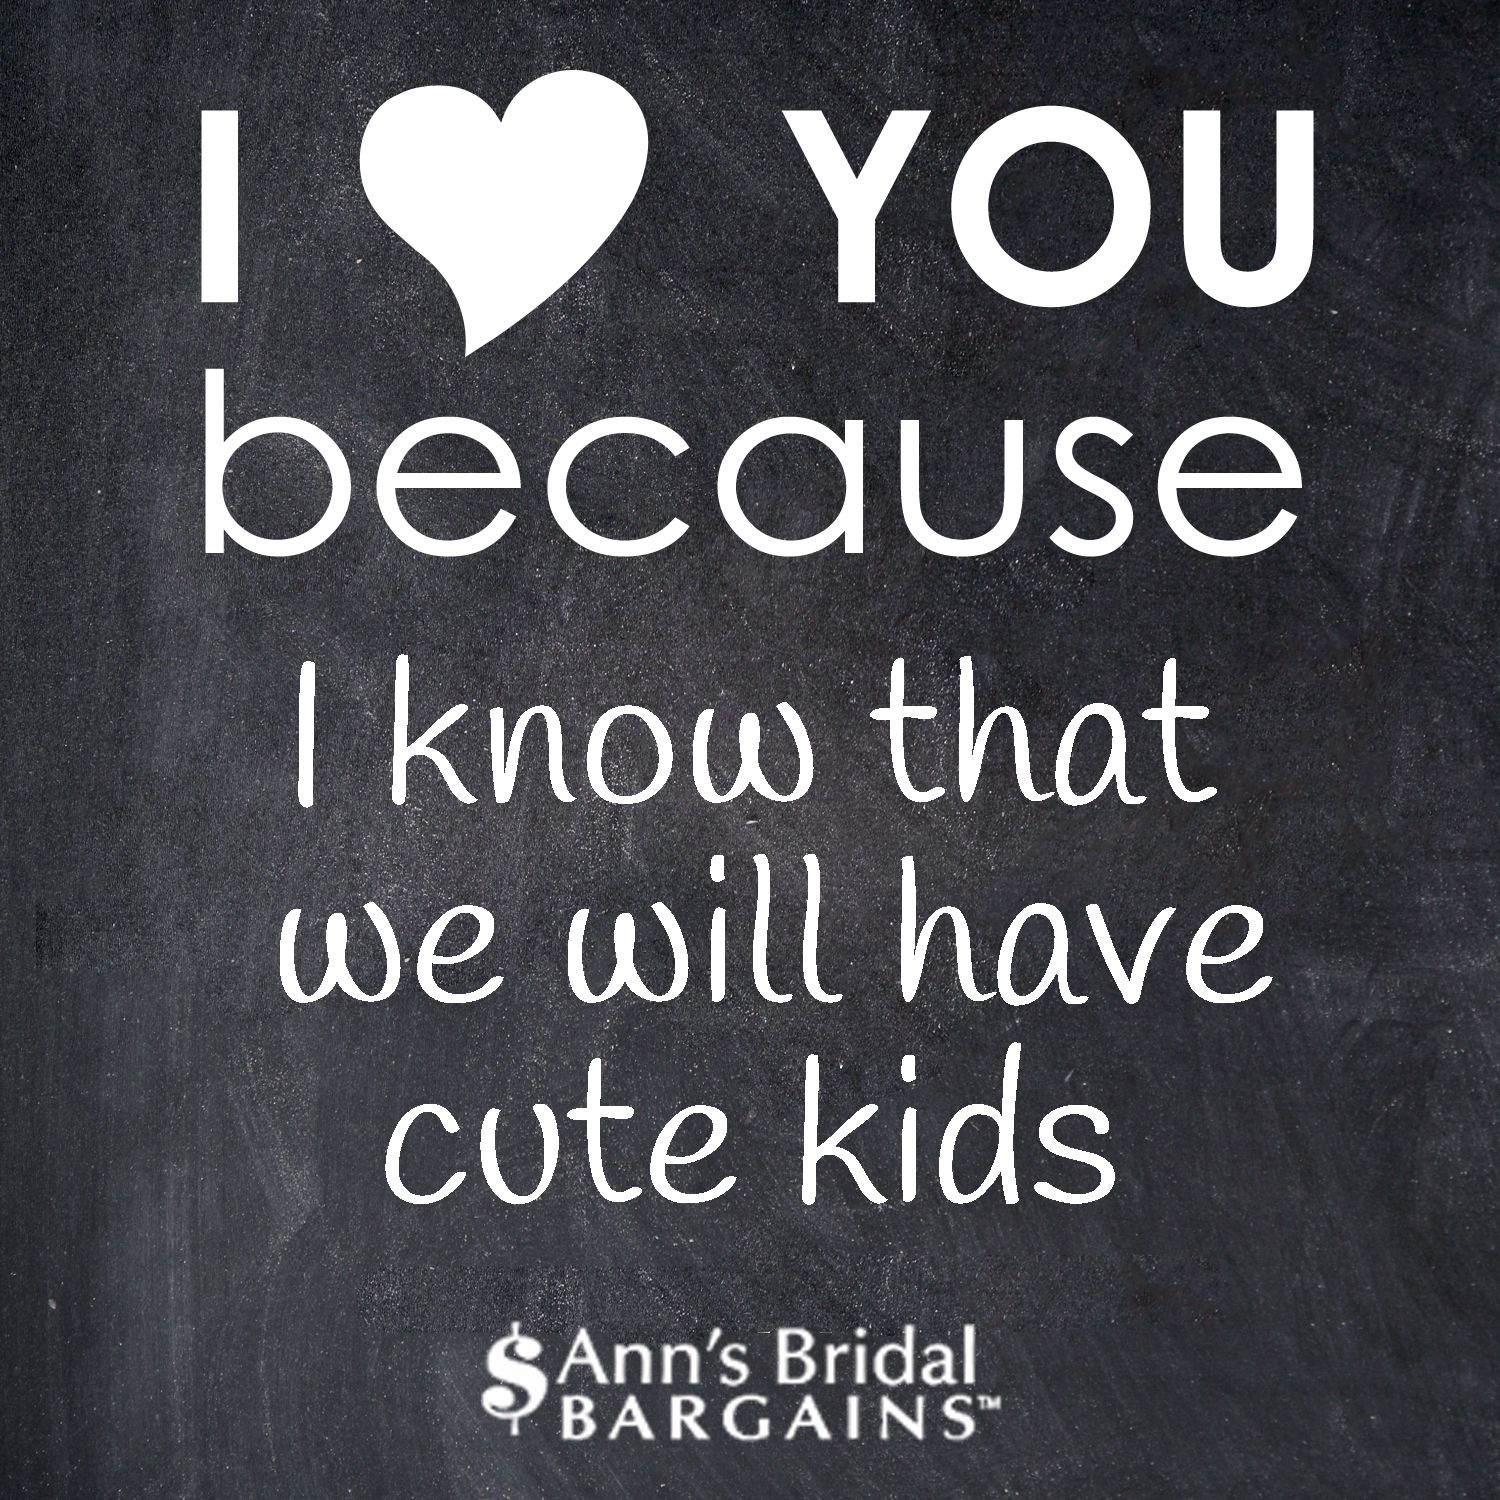 I love you because I know that we will have cute kids ...